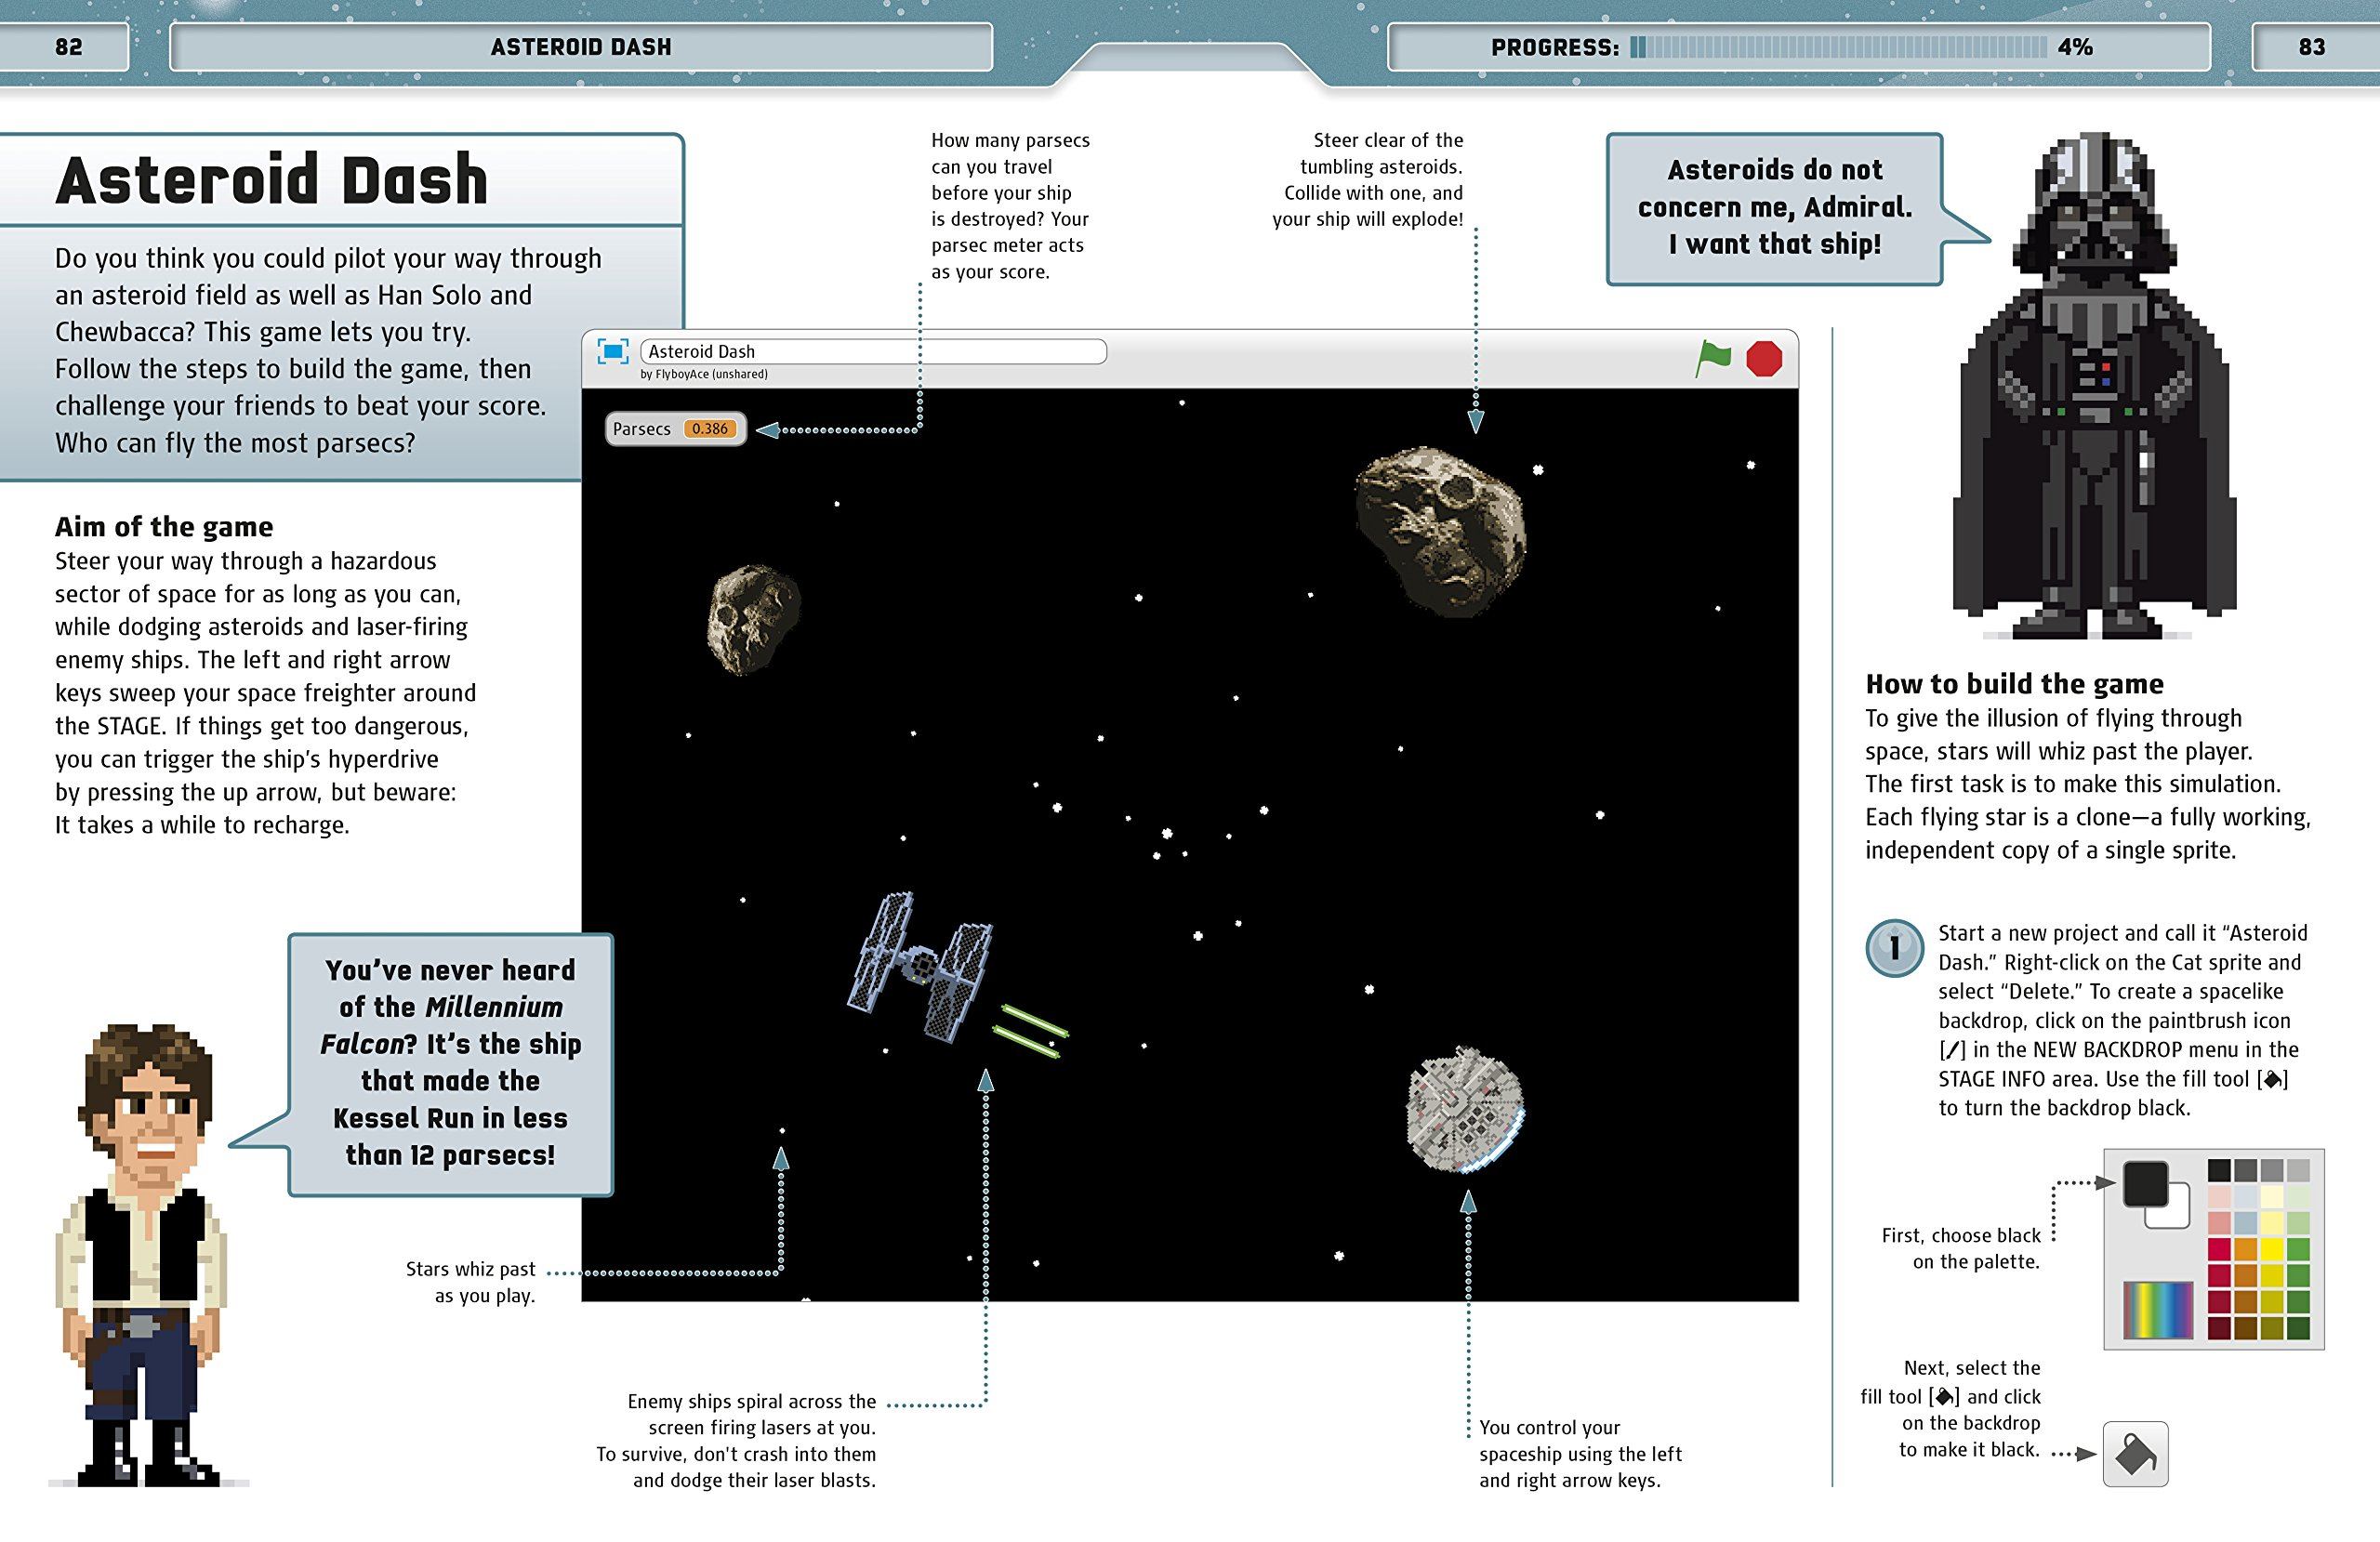 Star Wars Coding Projects: A Step-by-Step Visual Guide to Coding Your Own Animations, Games, Simulations an by DK Children (Image #12)